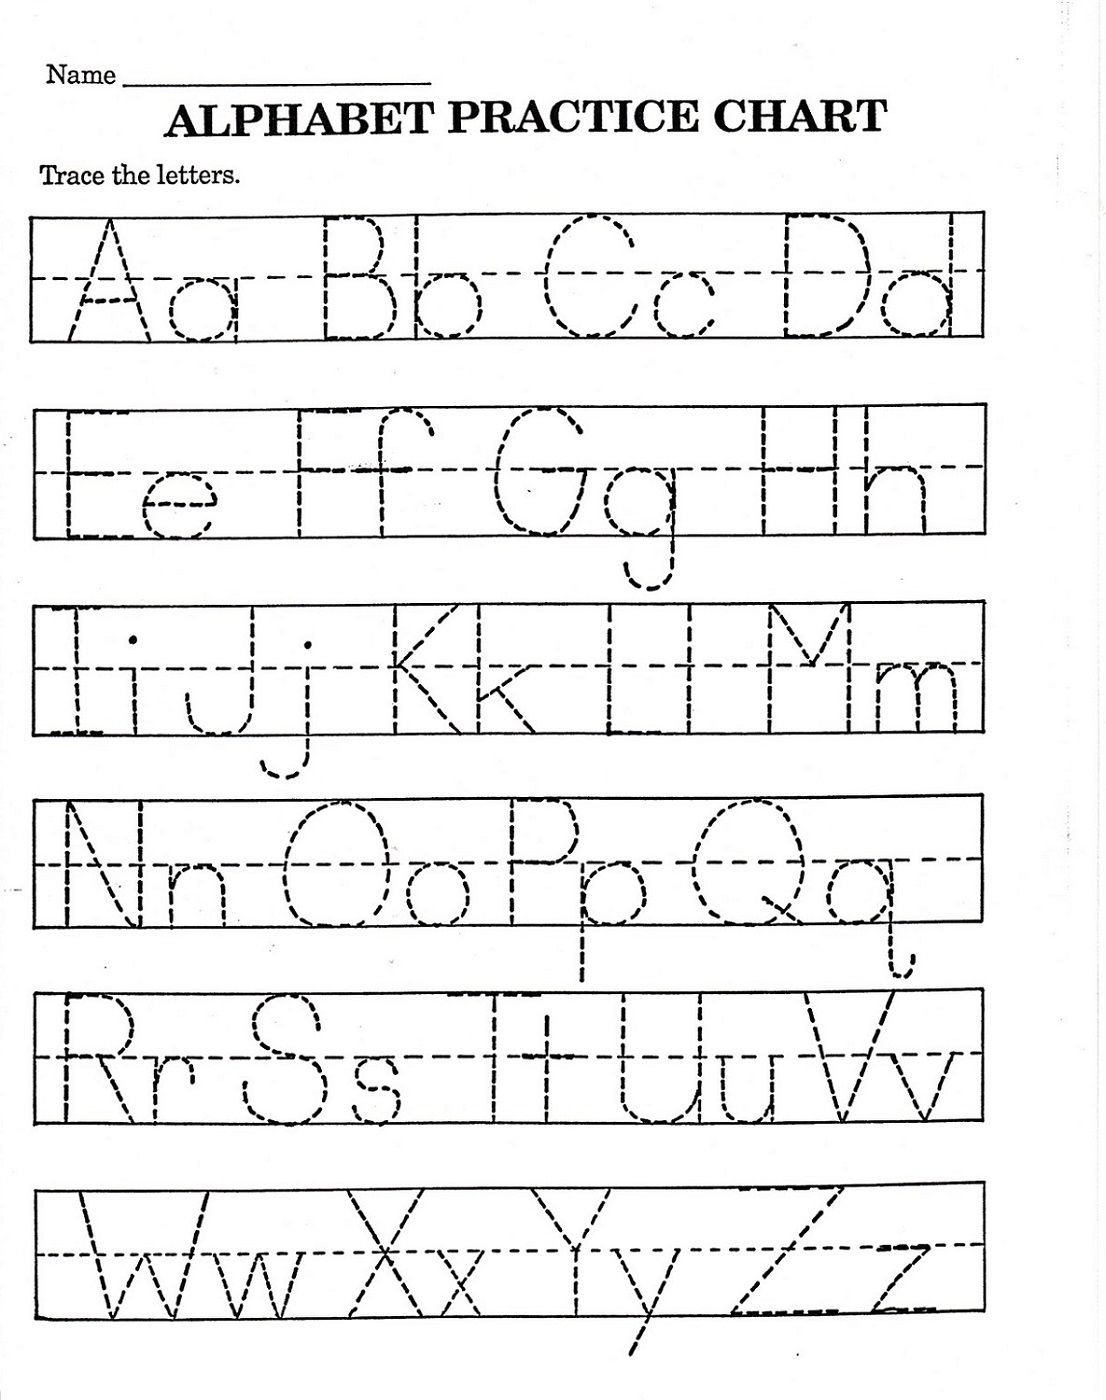 Trace Letter Worksheets Free | Printable Alphabet Worksheets for Pre K Alphabet Tracing Worksheets